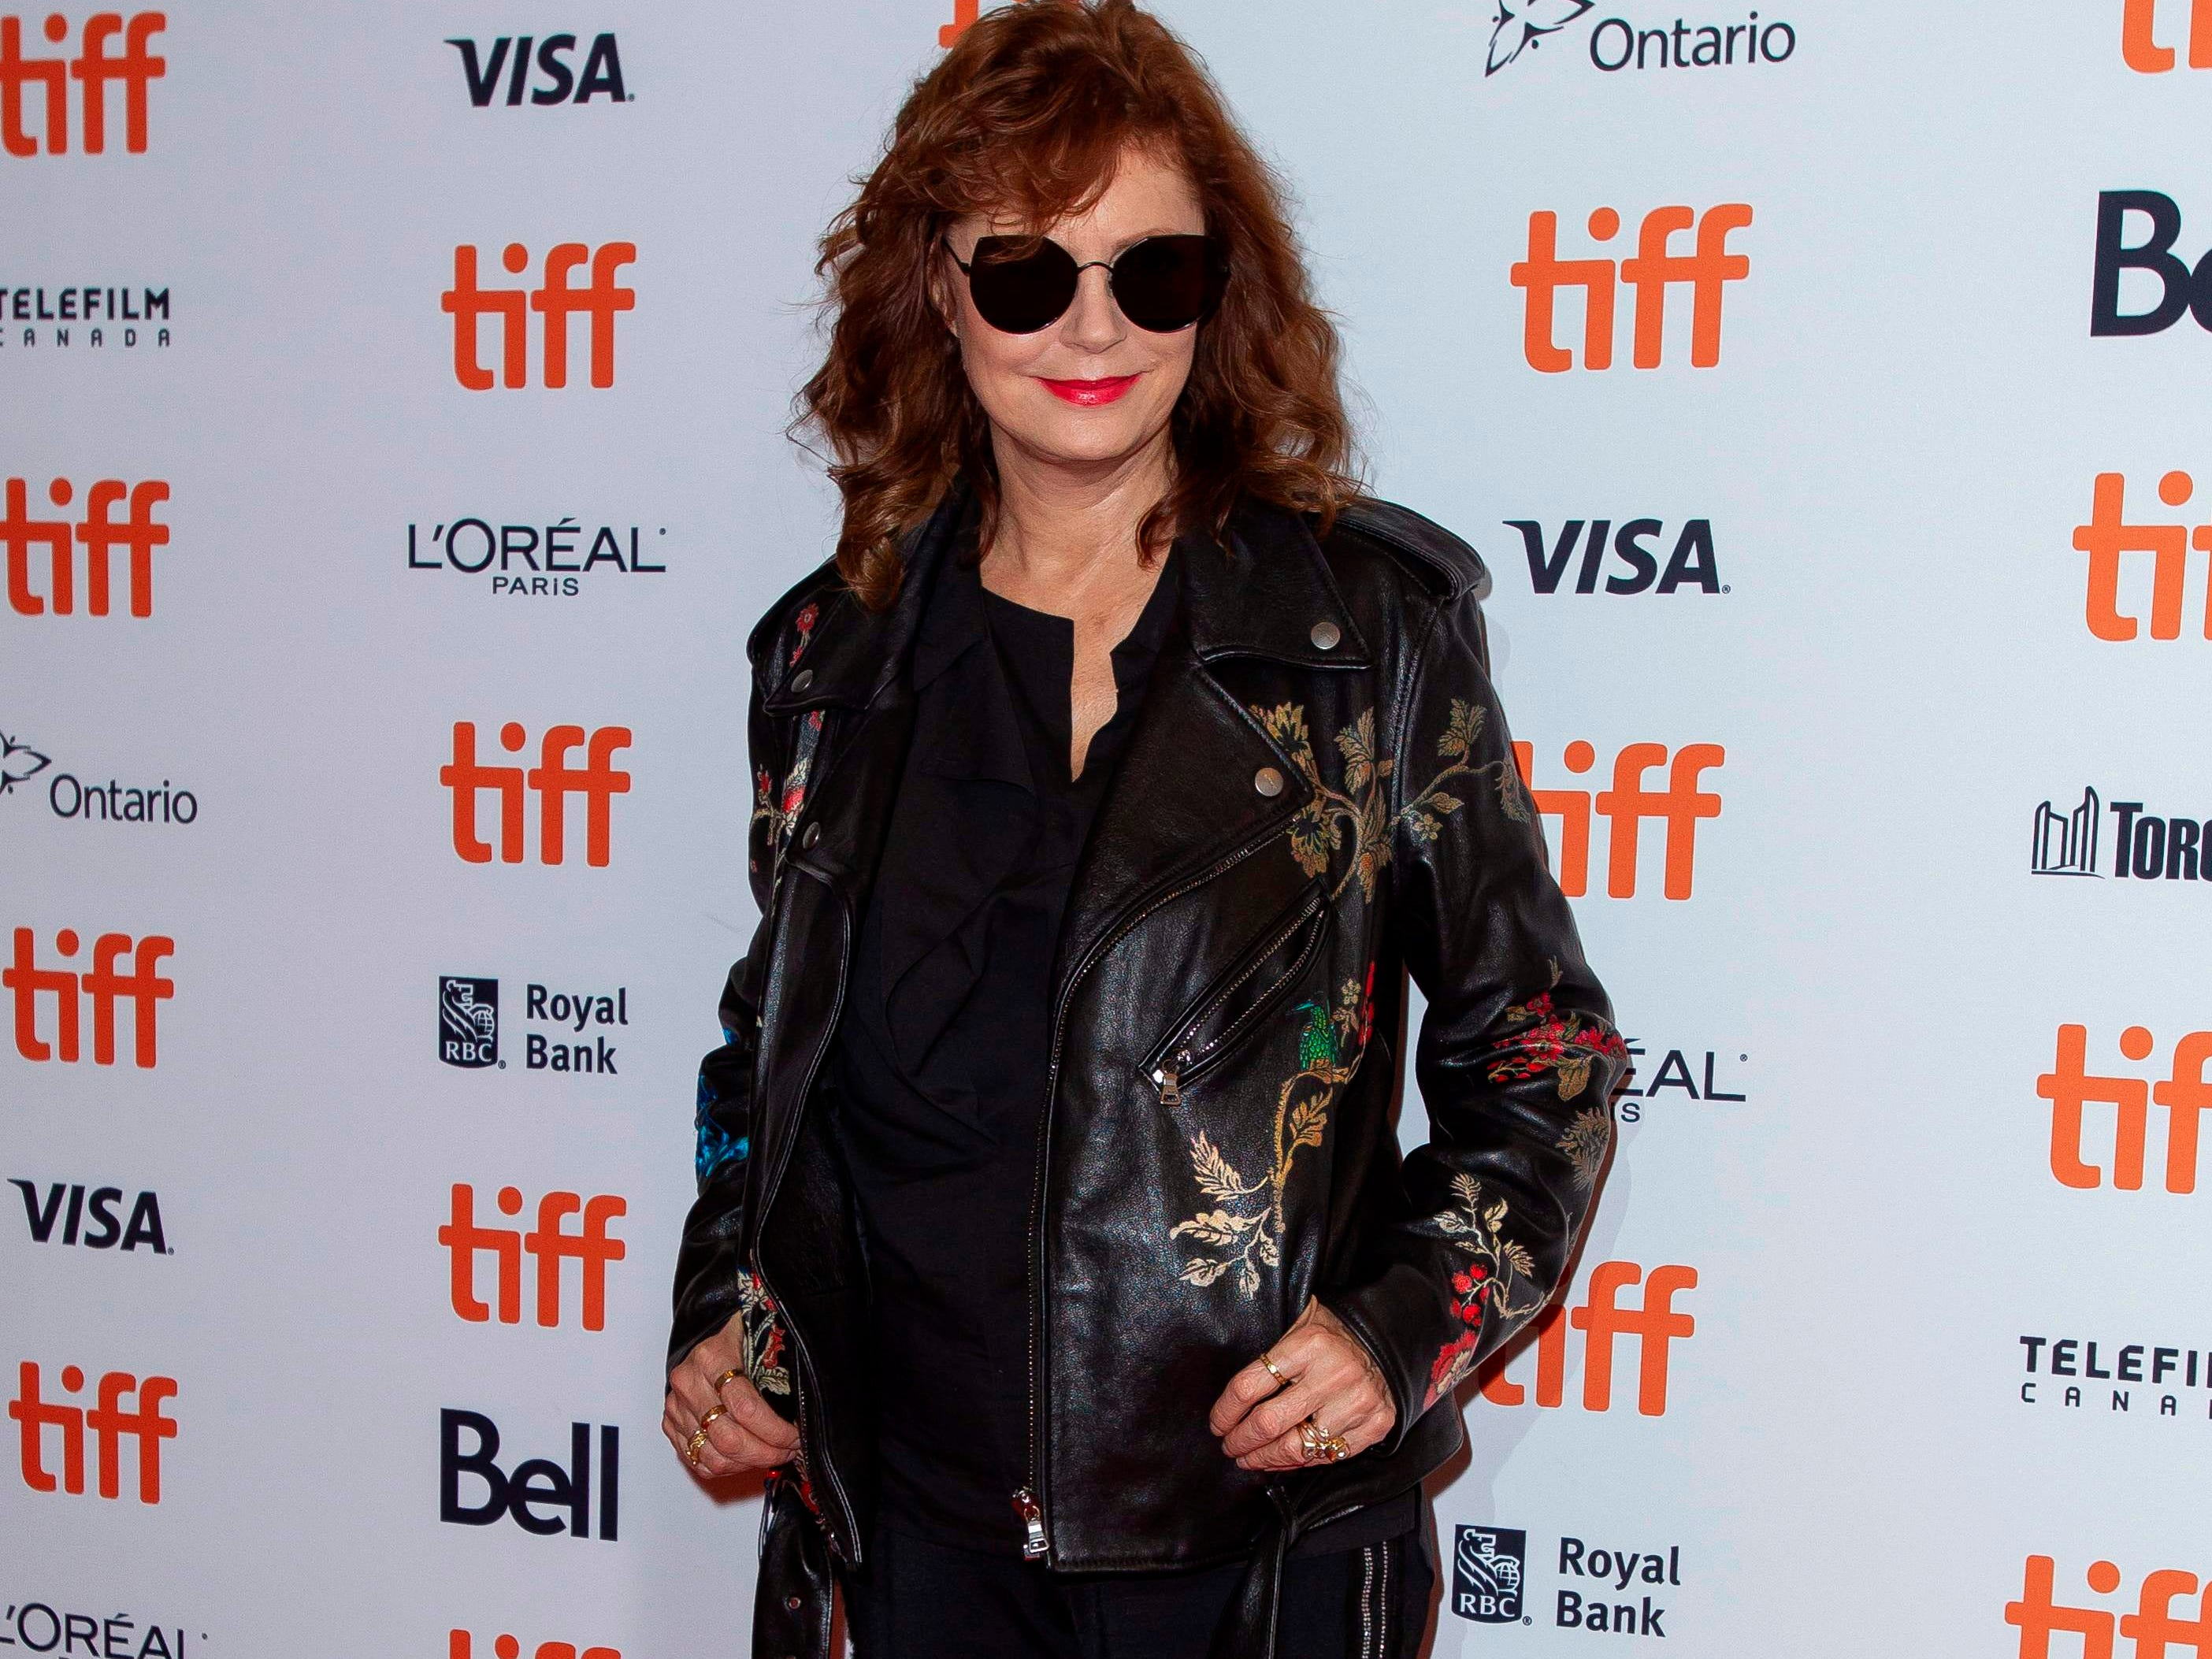 Susan Sarandon attends the premiere of 'Viper Man' at the Toronto International Film Festival in Toronto, Ontario, September 11, 2018. (Photo by Geoff Robins / AFP)GEOFF ROBINS/AFP/Getty Images ORG XMIT: Toronto I ORIG FILE ID: AFP_1911MD